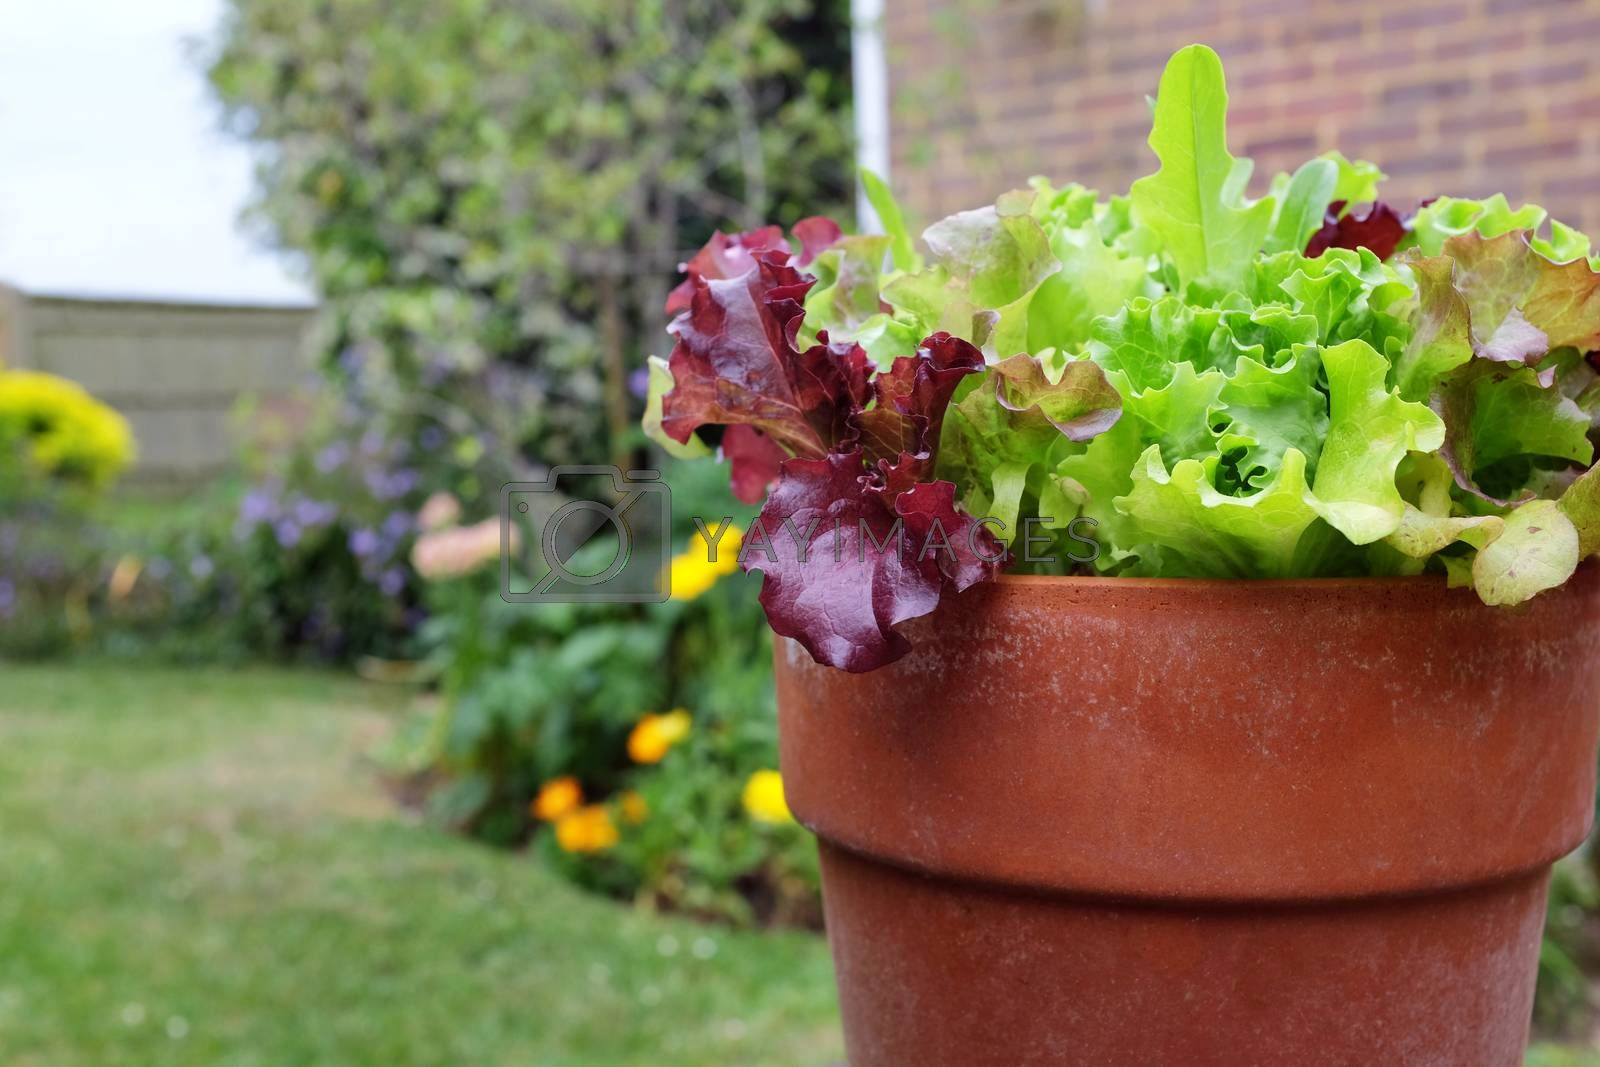 Mixed red and green salad leaves growing in a terracotta flower pot, in selective focus against a colourful garden